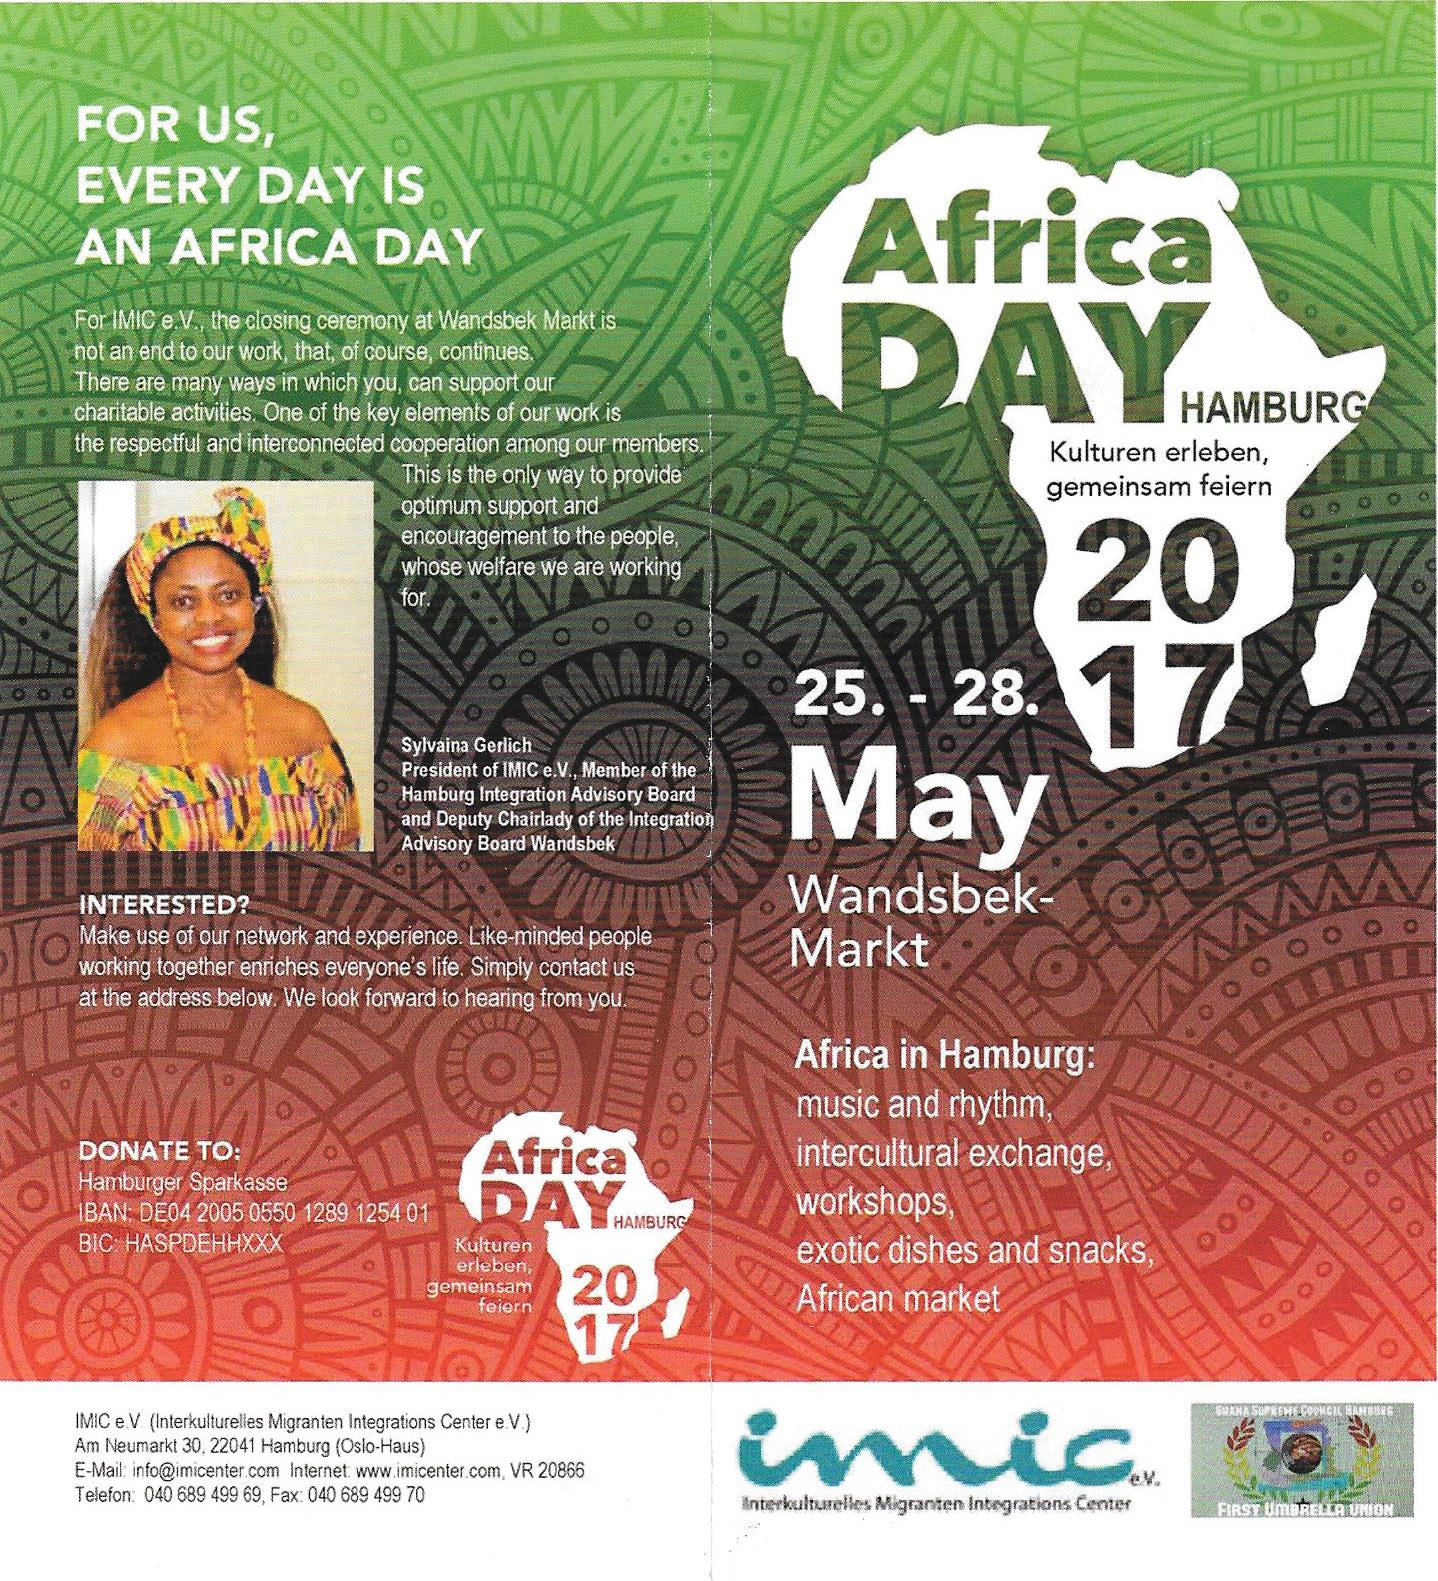 Africa Day - Humburg, Germany 2017